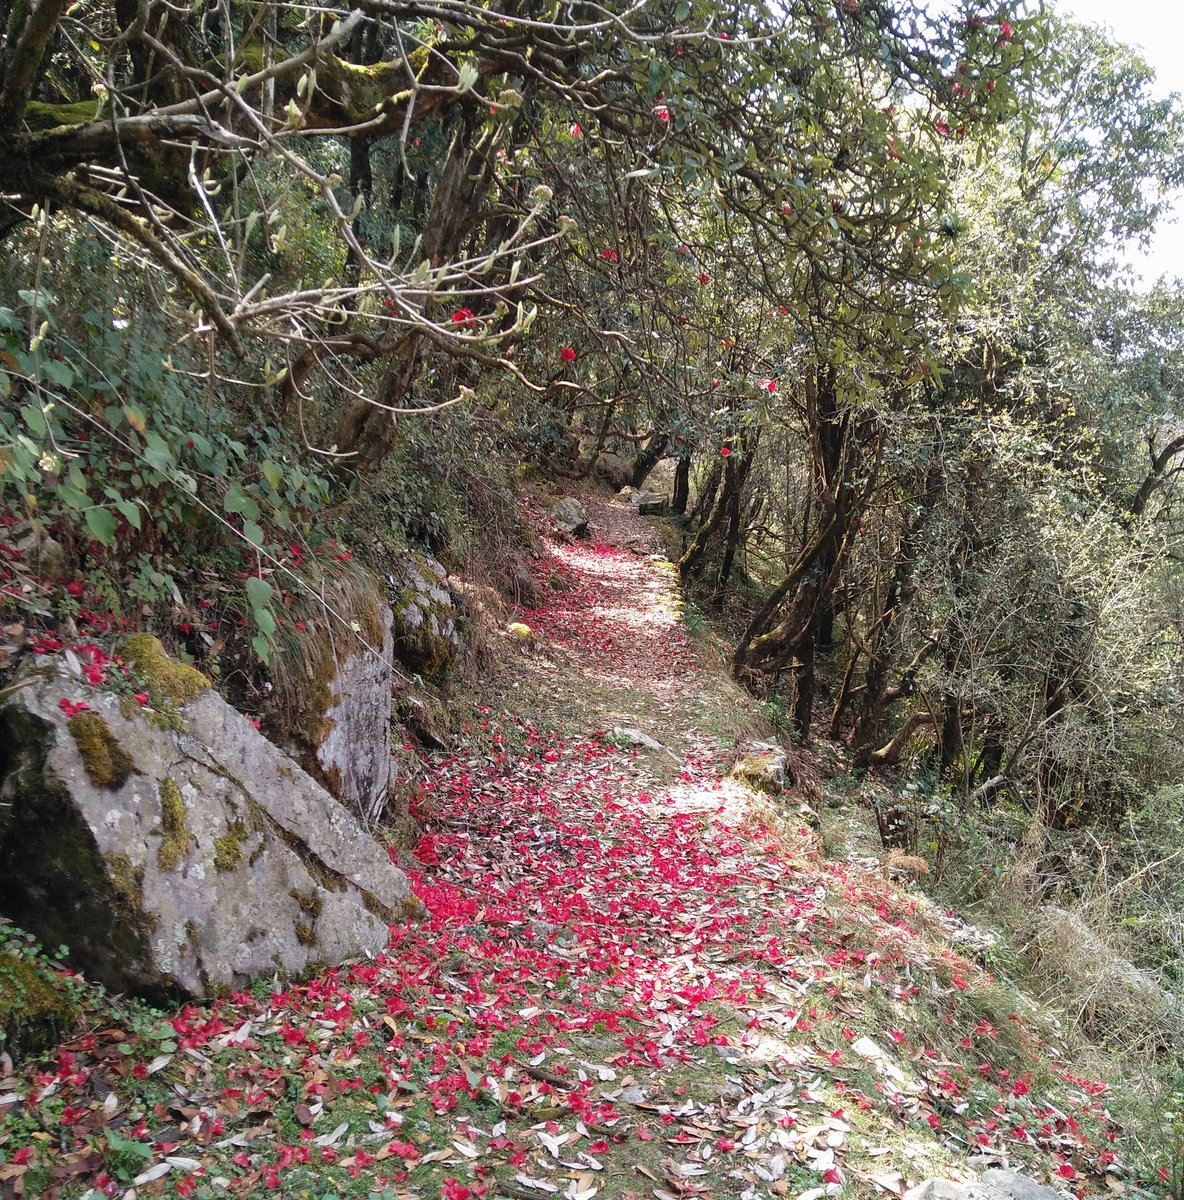 Up for a walk? #rhododendrons #landour #himalaya <br>http://pic.twitter.com/L8chqtkKoq